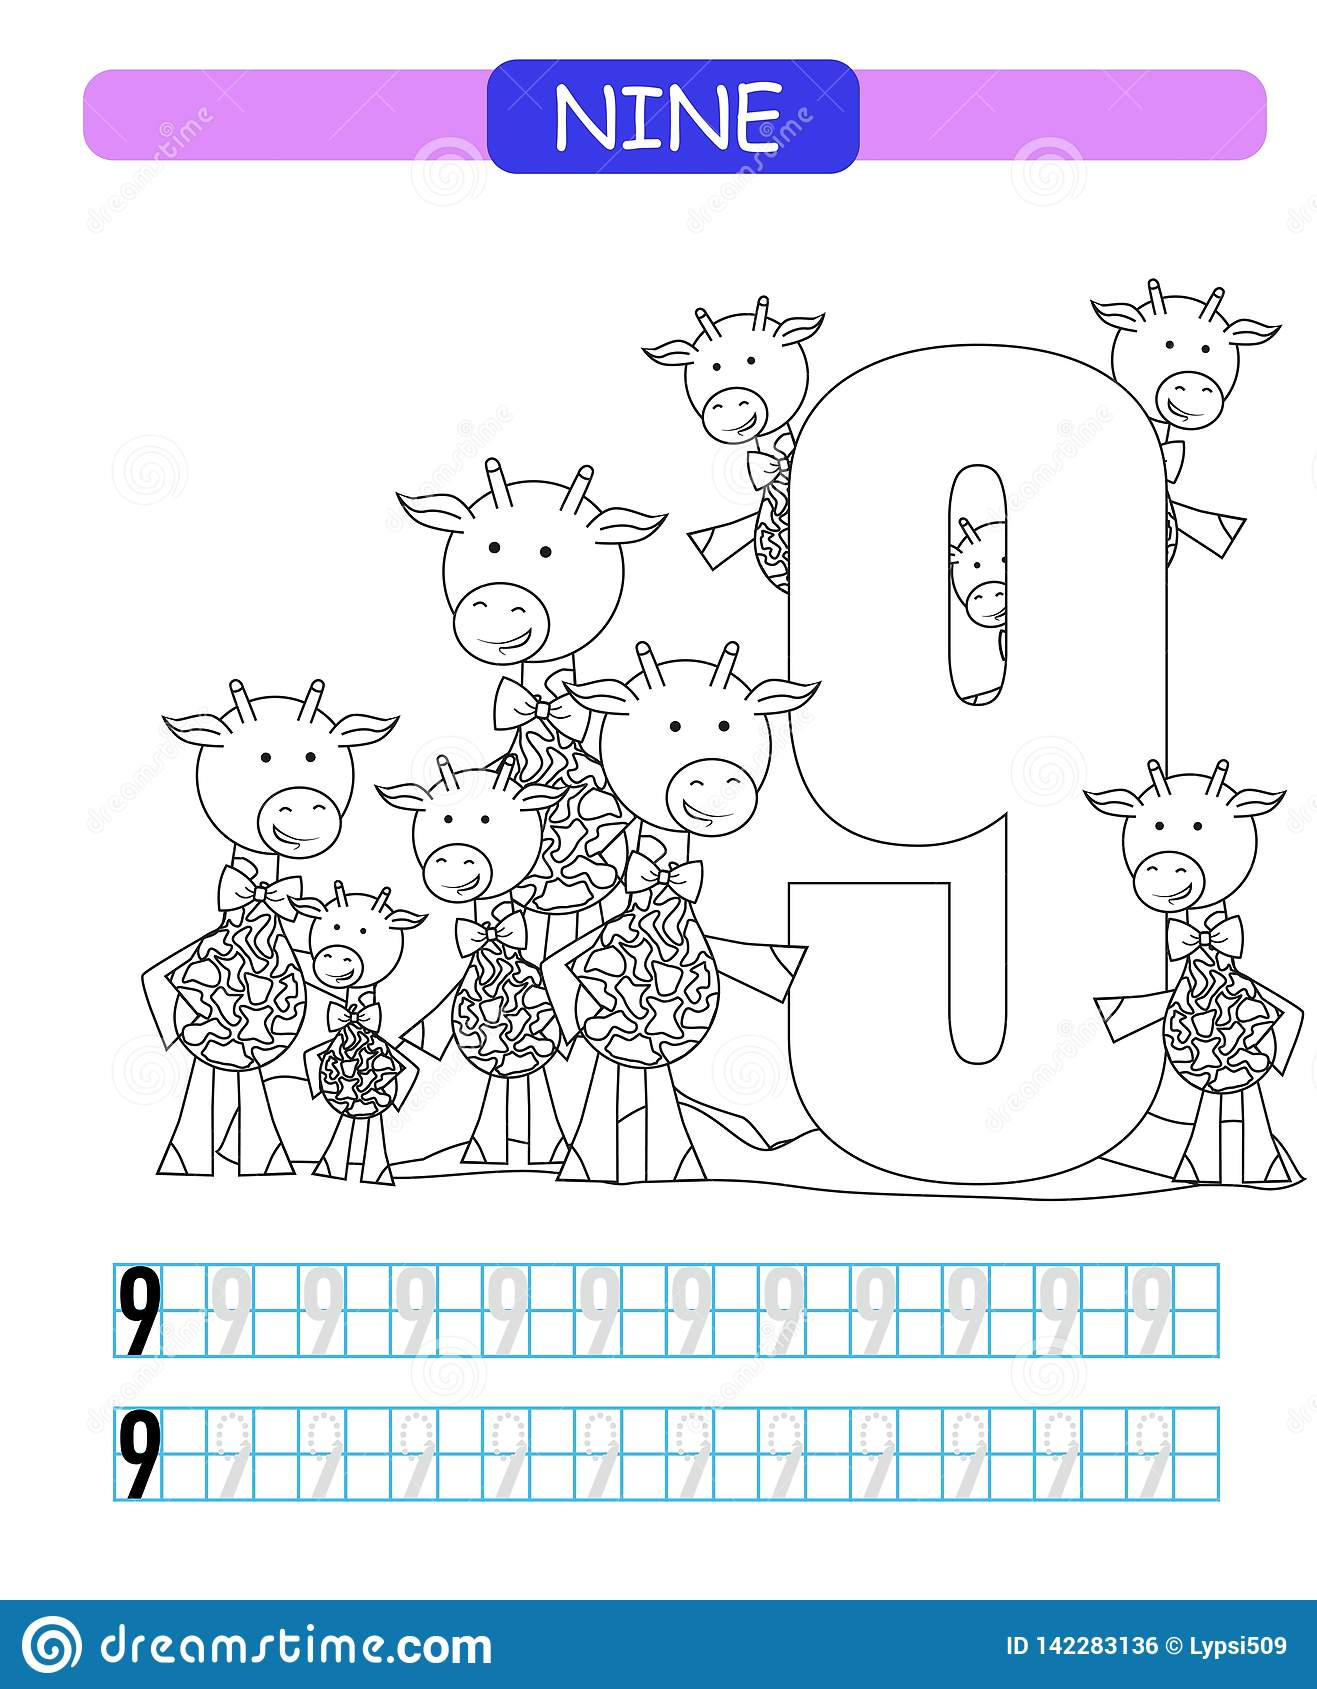 Nine Learning Number 9 Coloring Printable Worksheet For